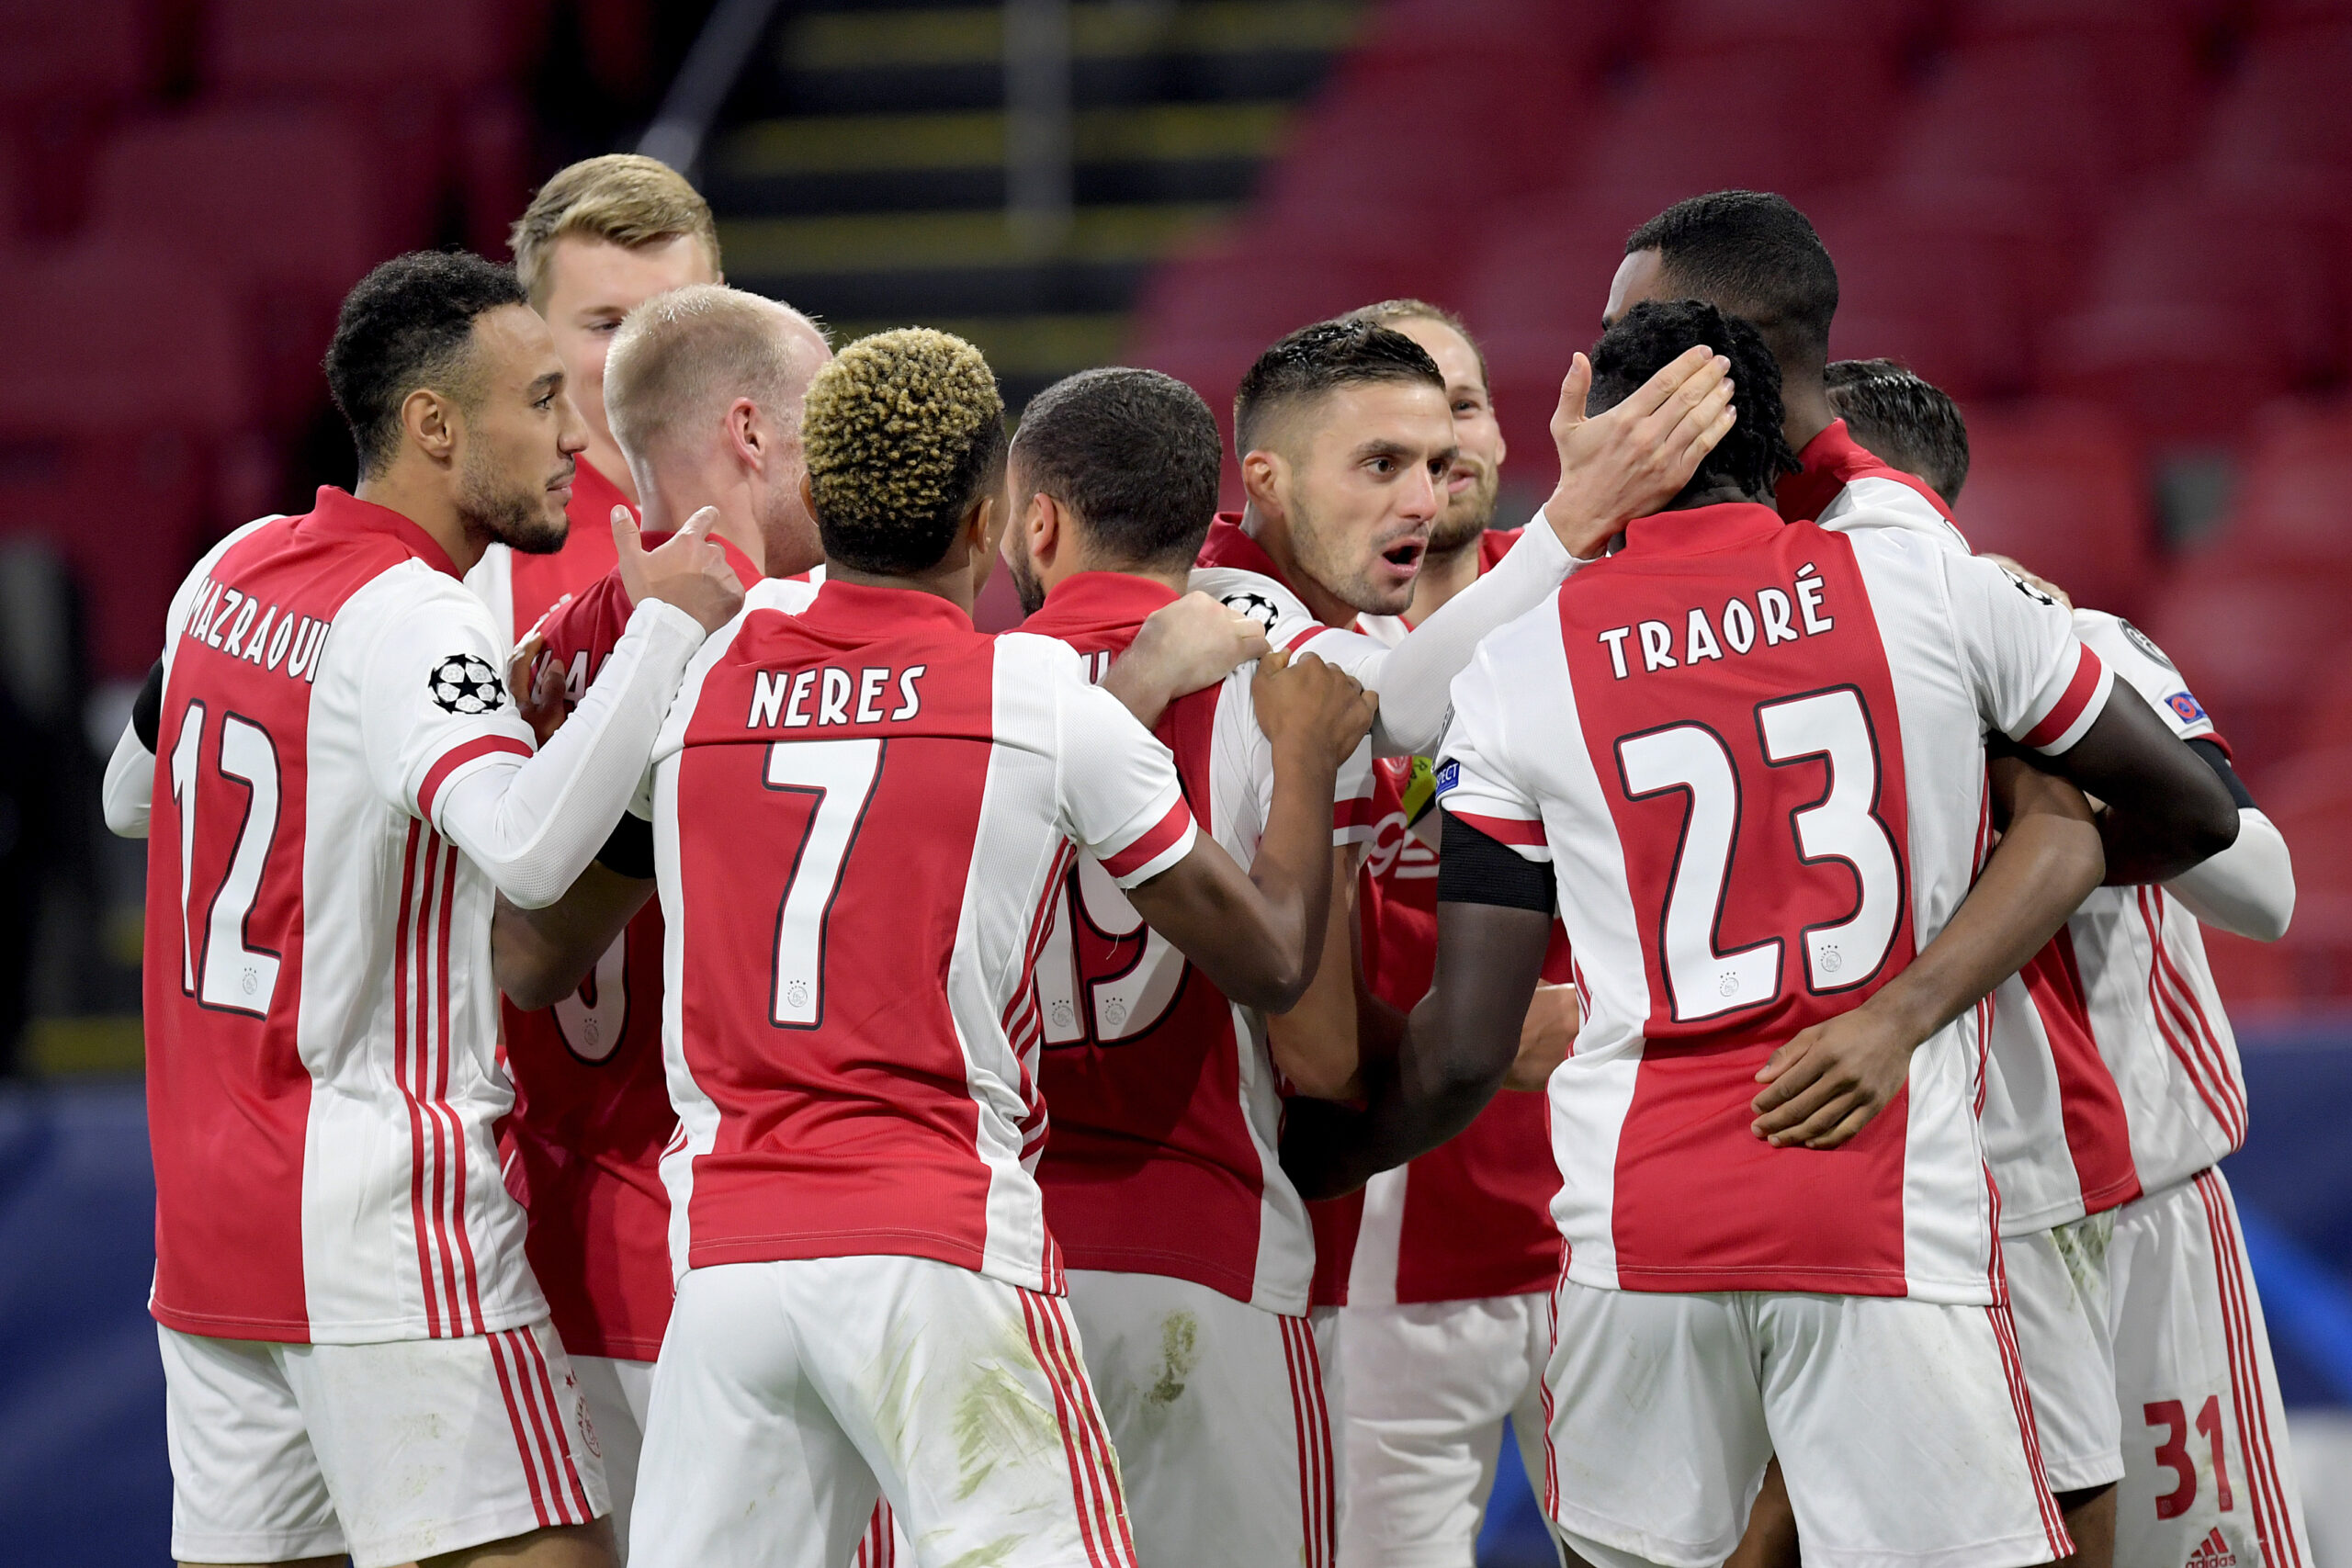 Are you excited about Ajax for 2021? - All about Ajax